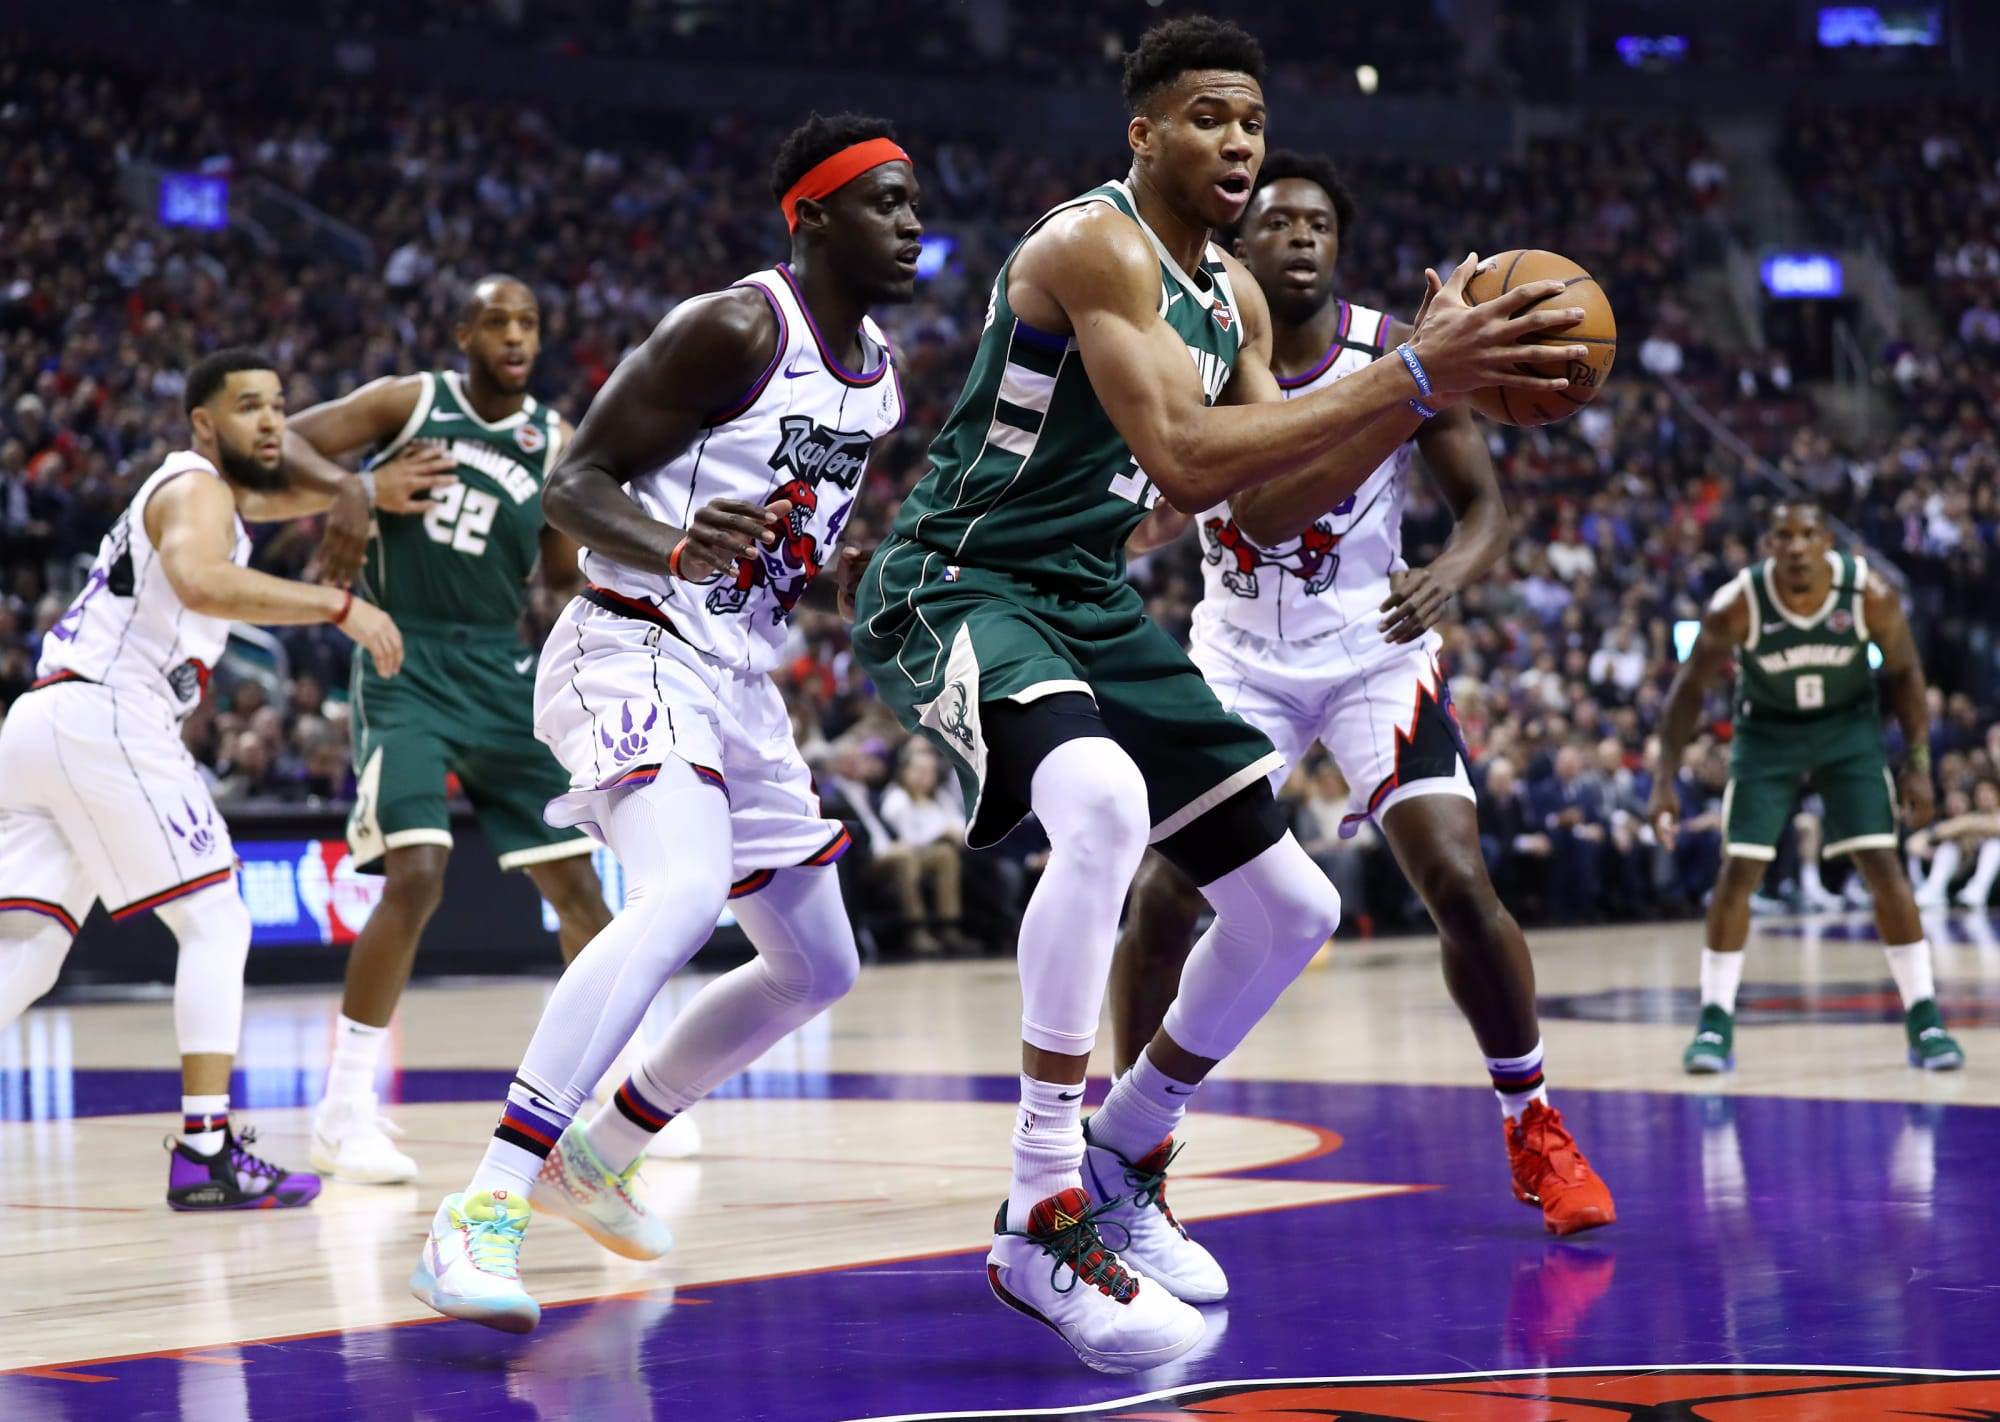 Giannis will impact Ujiri's future with Toronto Raptors